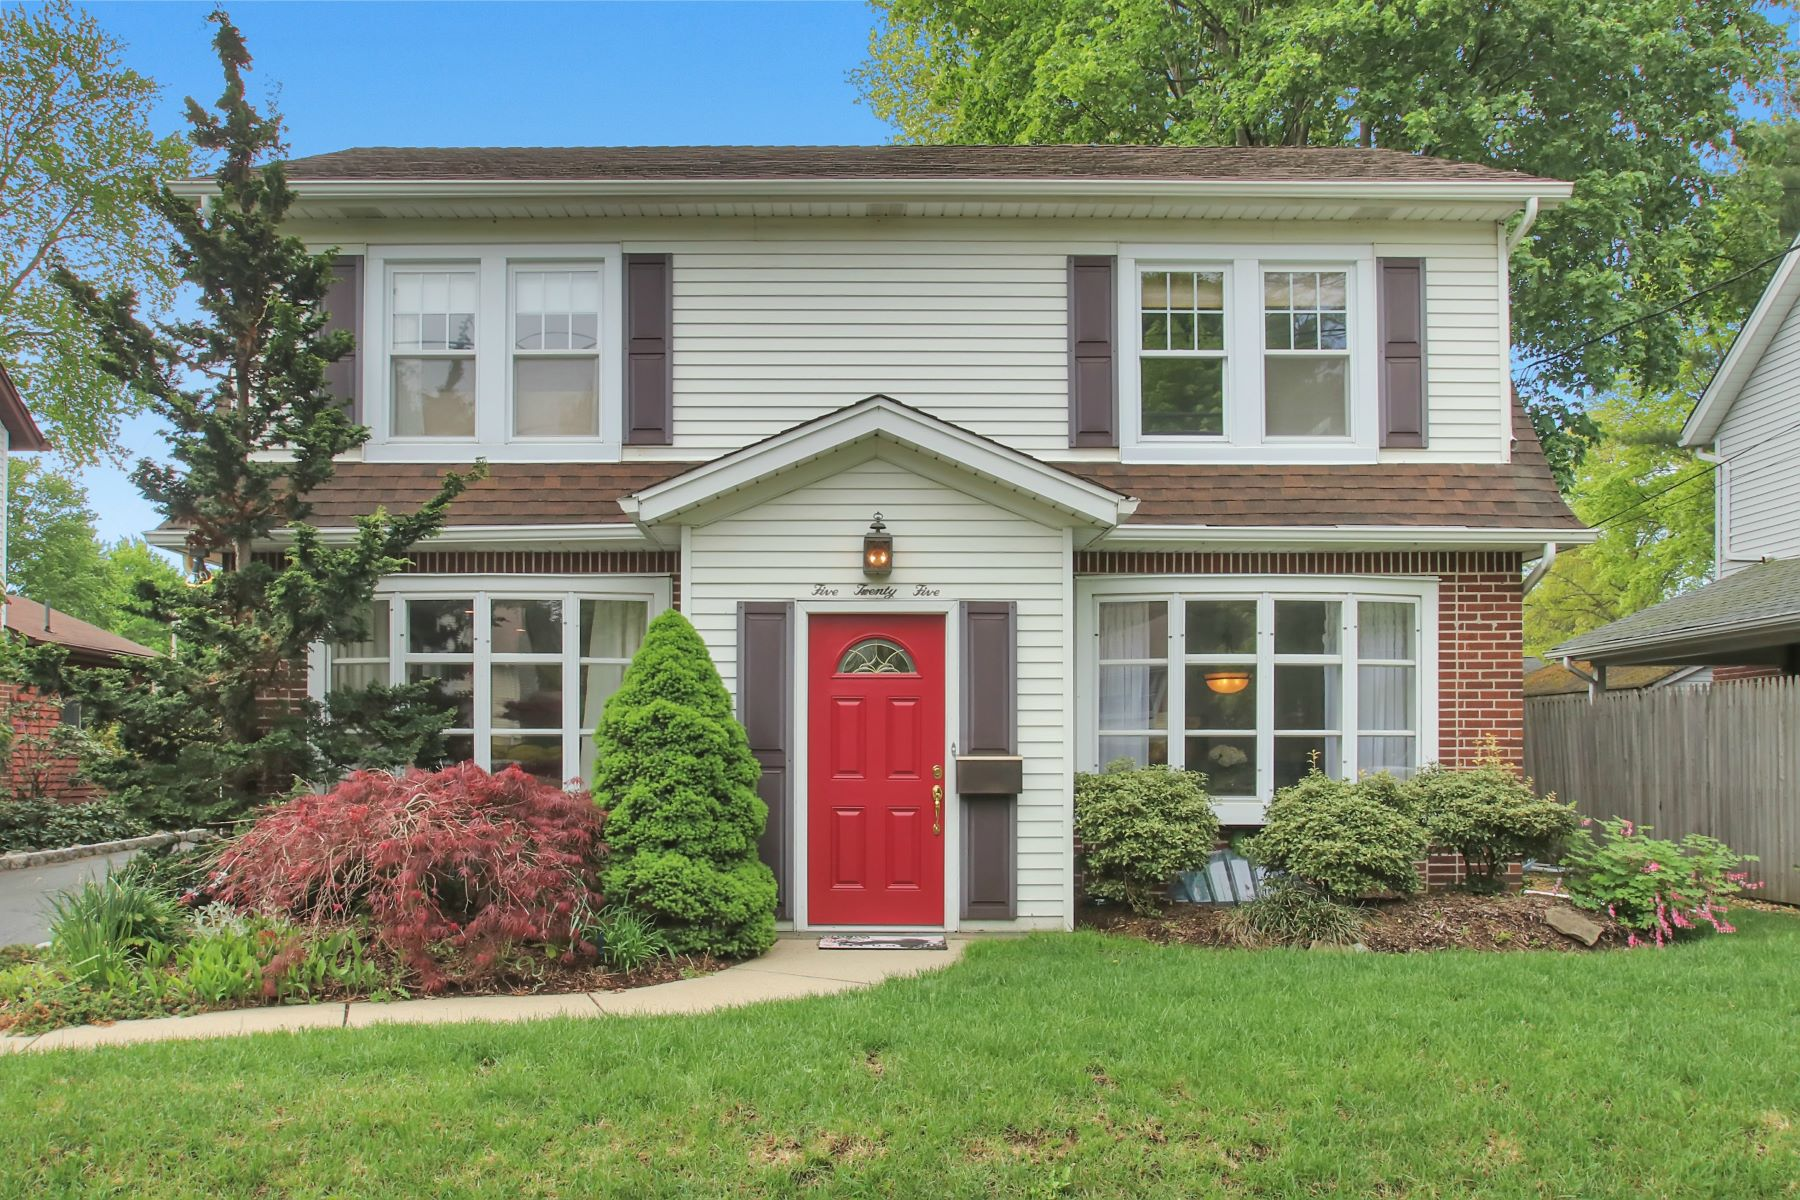 Single Family Home for Sale at Beautiful River Vale Colonial! 525 Cleveland Avenue Westwood, New Jersey 07675 United States